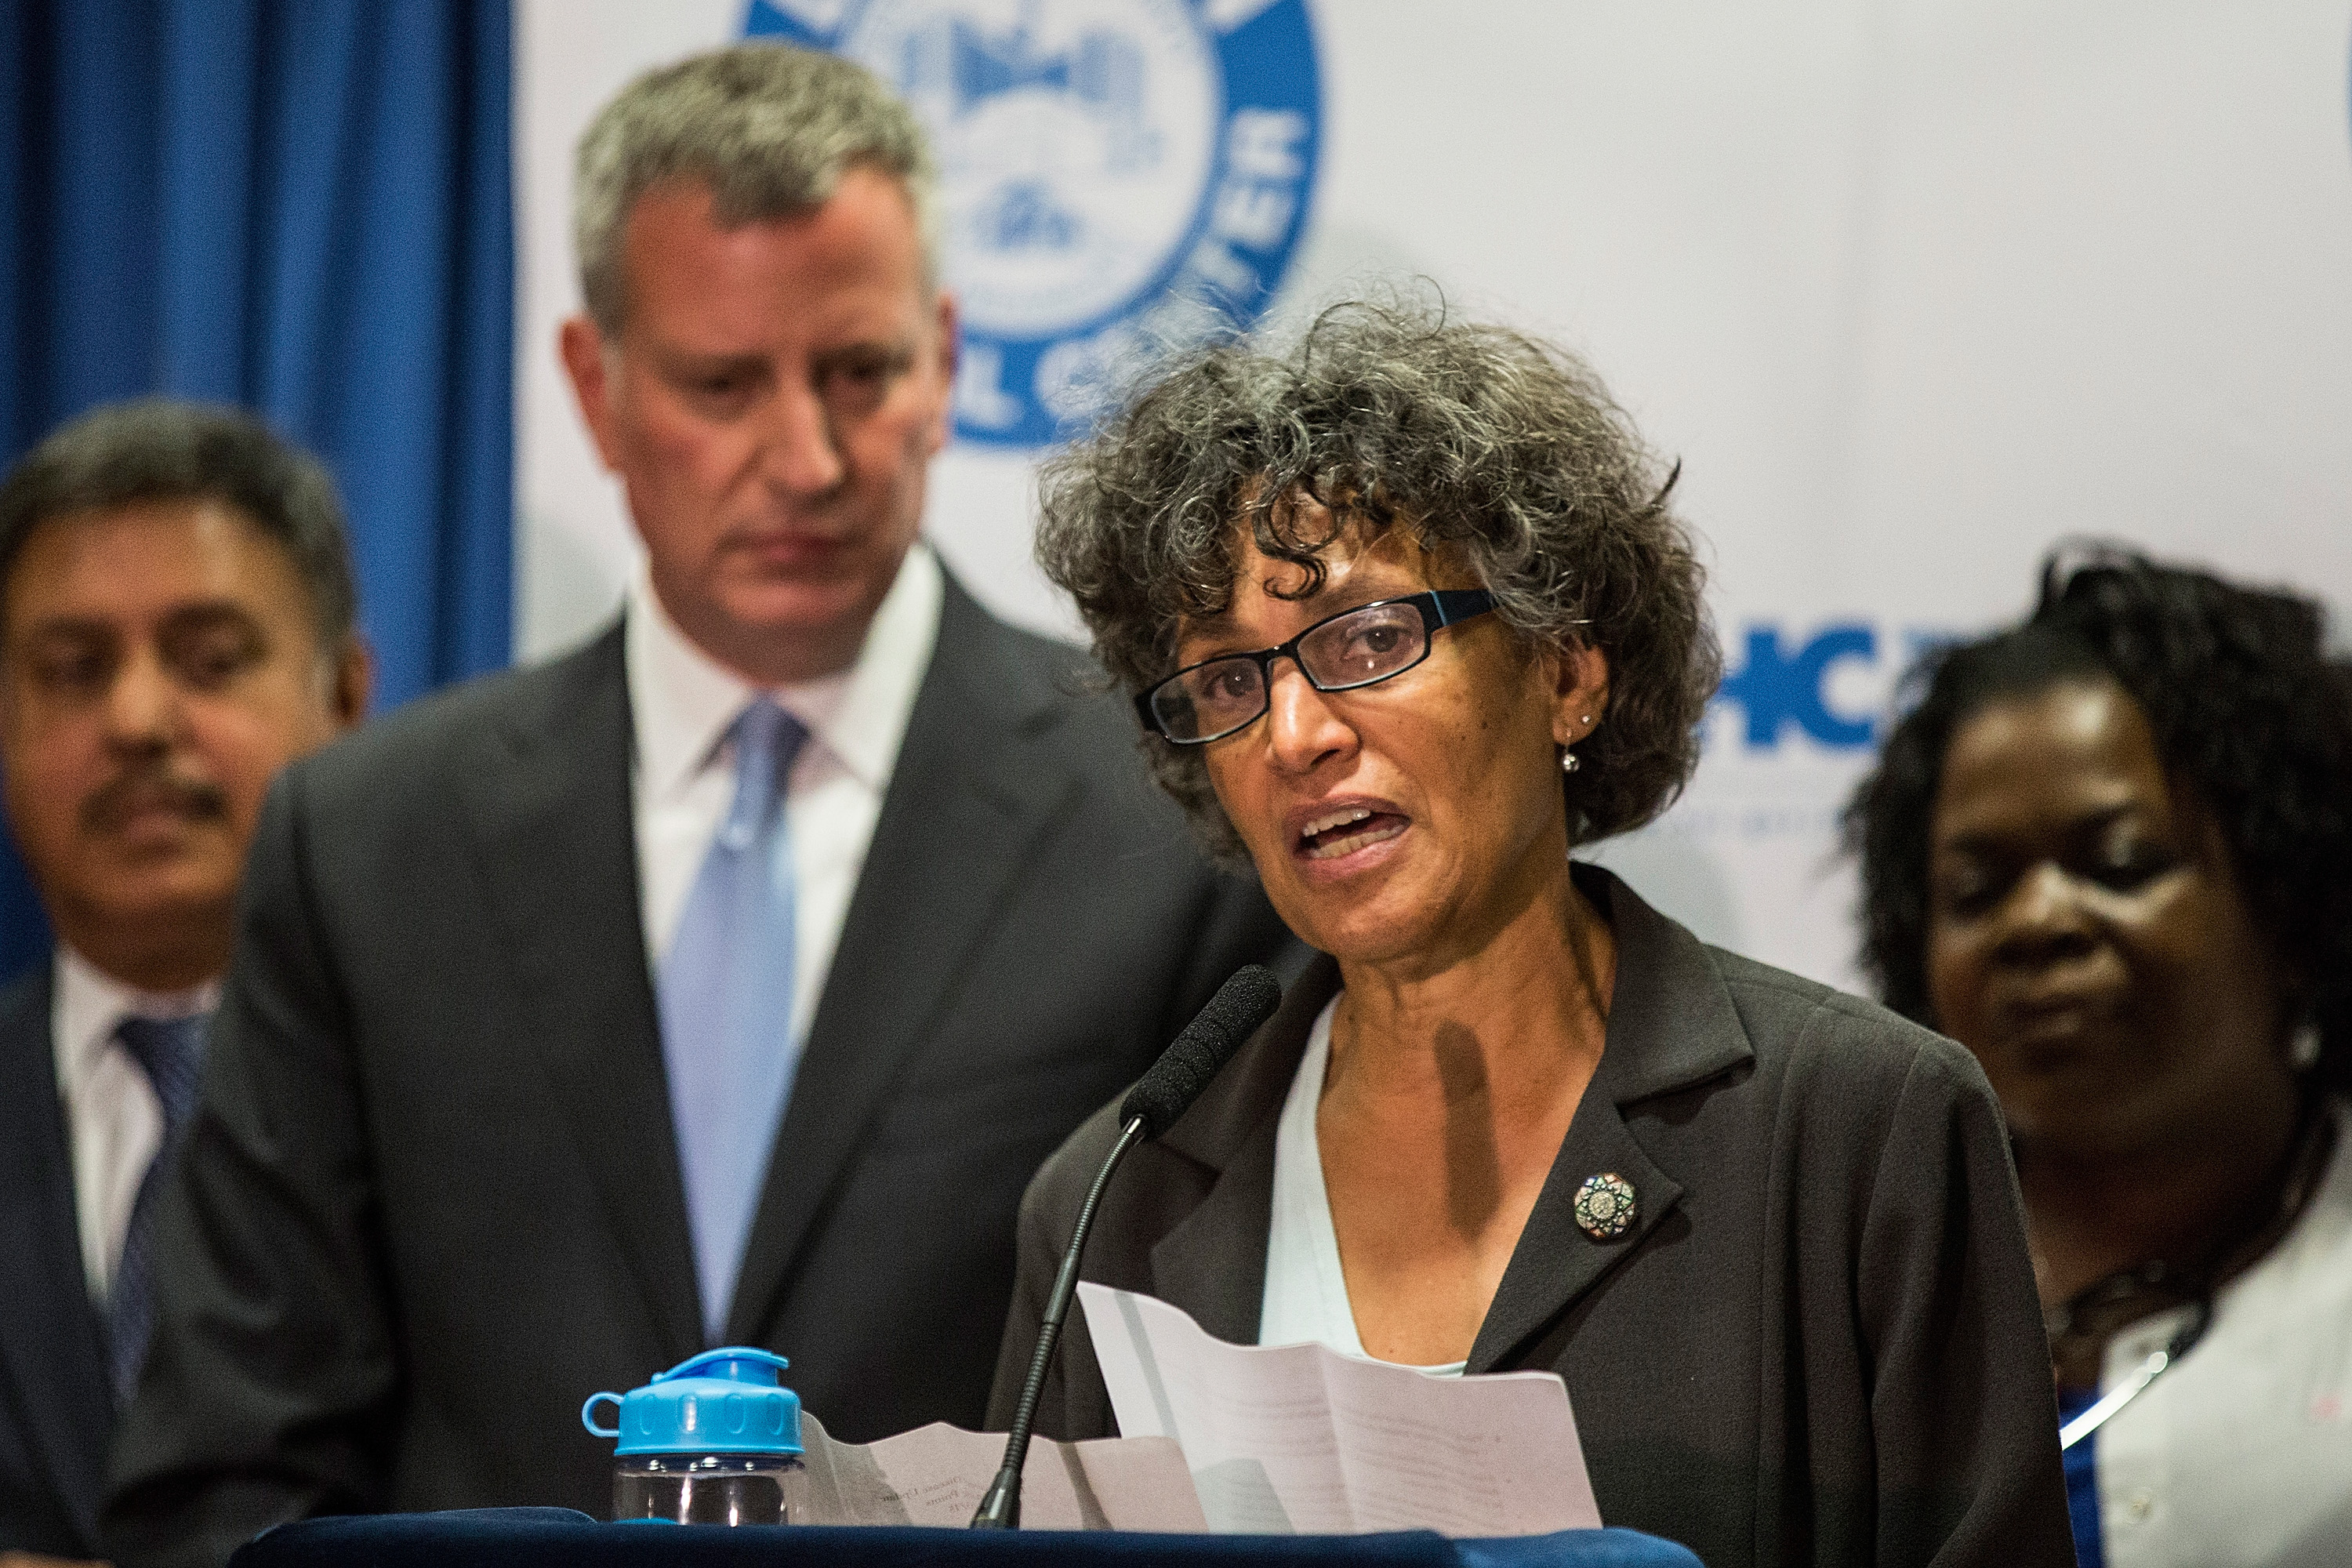 New York City Mayor Bill de Blasio and Dr. Mary Bassett, Commissioner of the New York City Department of Health (Photo by Andrew Burton/Getty Images)